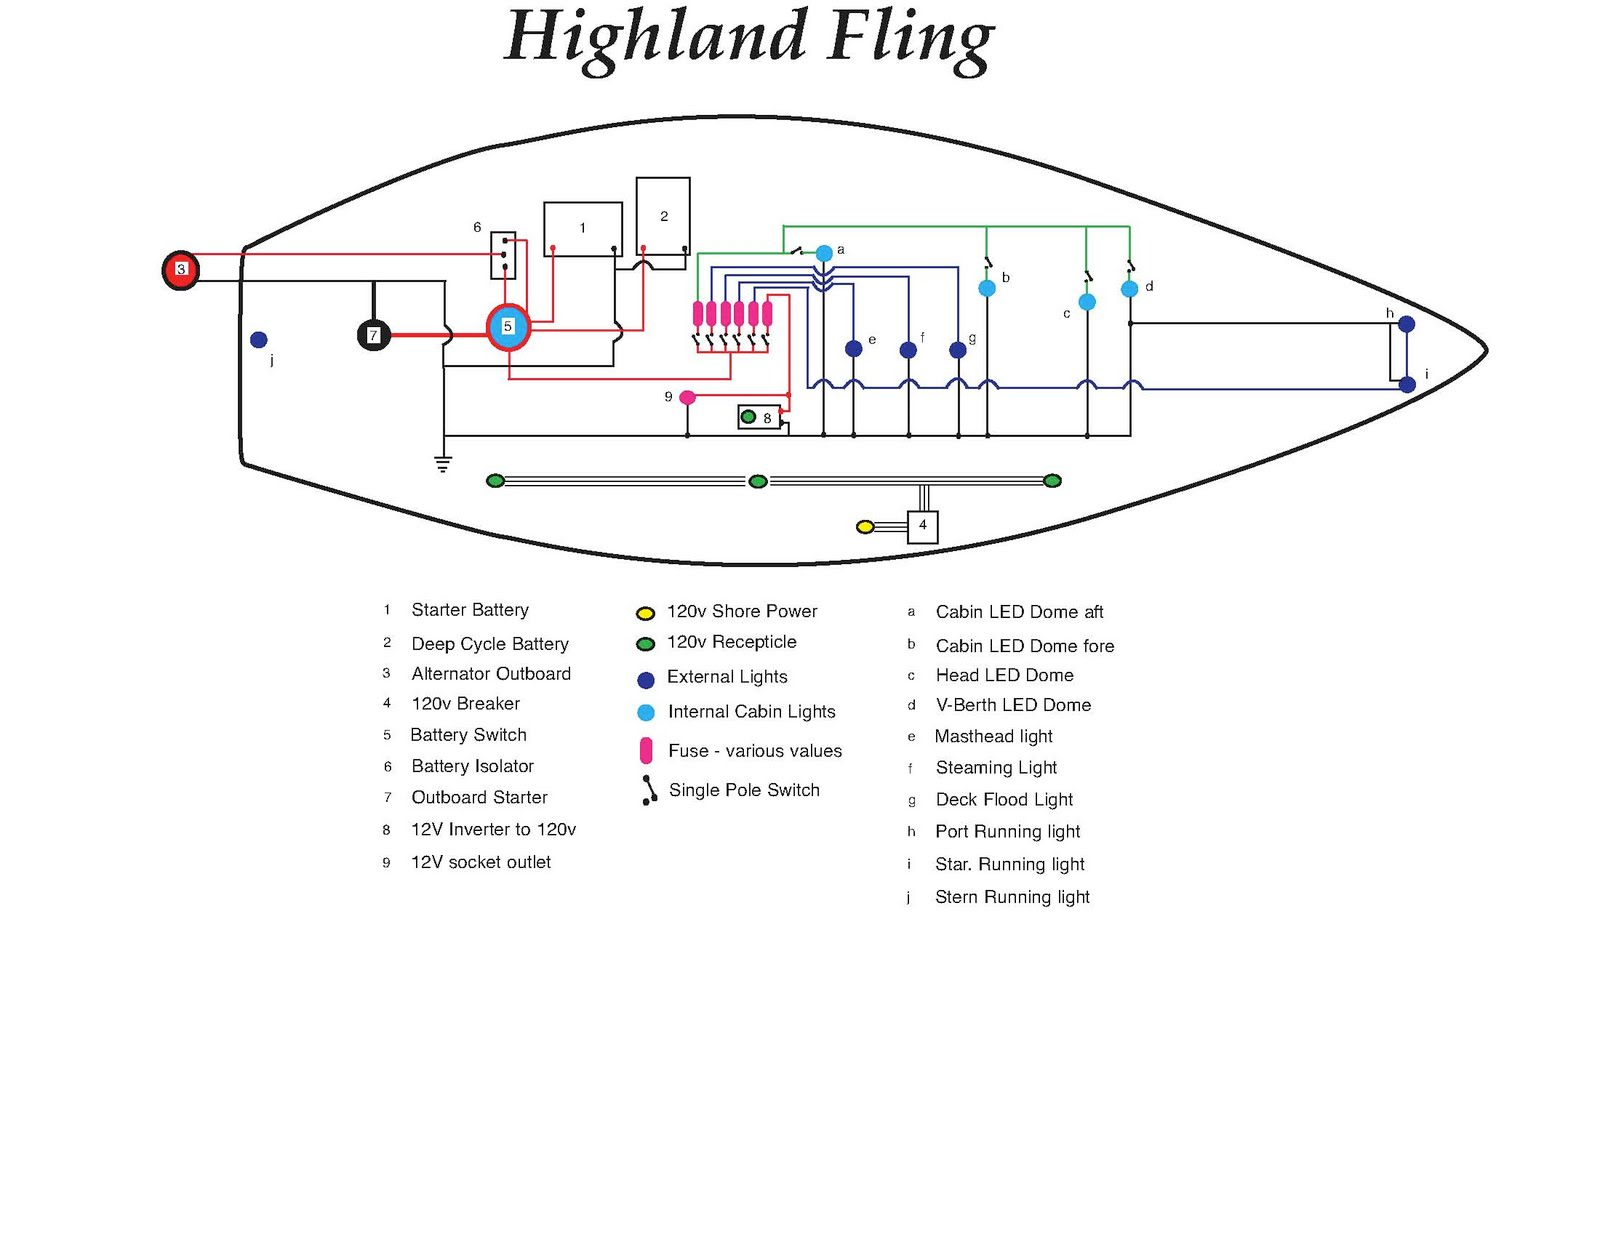 Sailboat Electrical Diagram Opinions About Wiring Fuse Panel Of Pole 3 Highland Fling My Grampian 26 Project Current Basic Diagrams